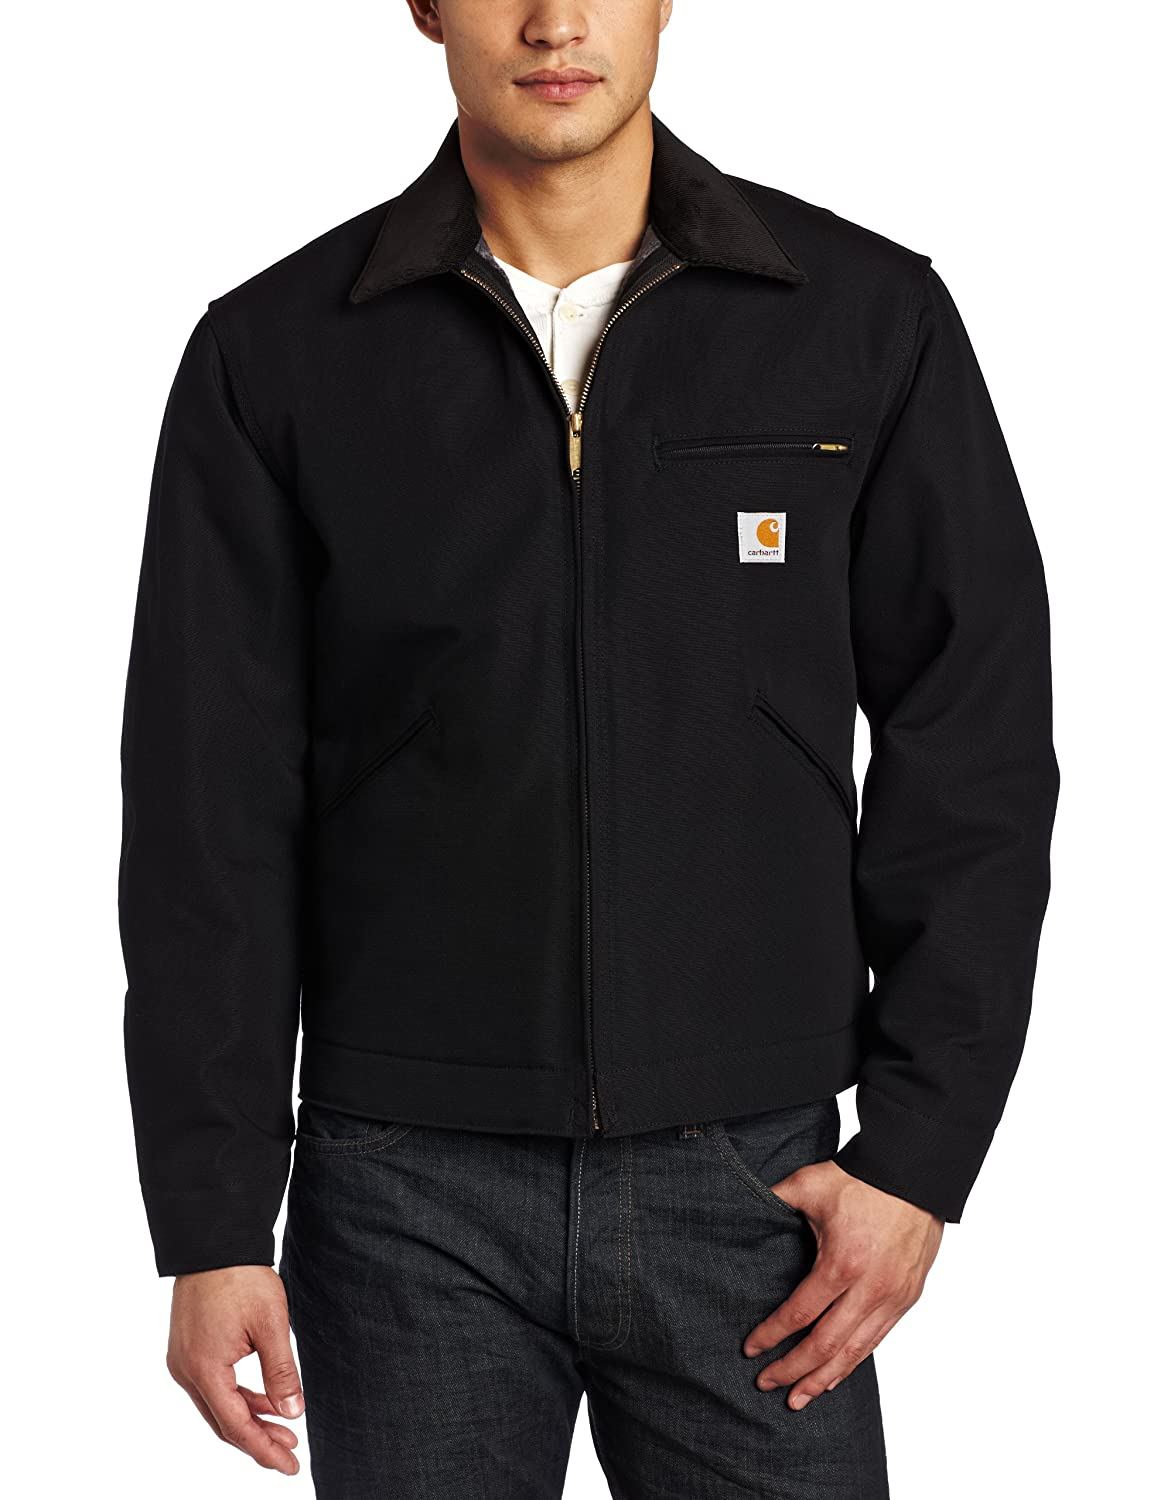 Jackets: Free Shipping on orders over $45 at hitseparatingfiletransfer.tk - Your Online Jackets Store! Get 5% in rewards with Club O! SALE. Quick View. Sale $ Seduka Men's Jacket - Contemporary, Casual, Sportswear Military Style Peacoat.